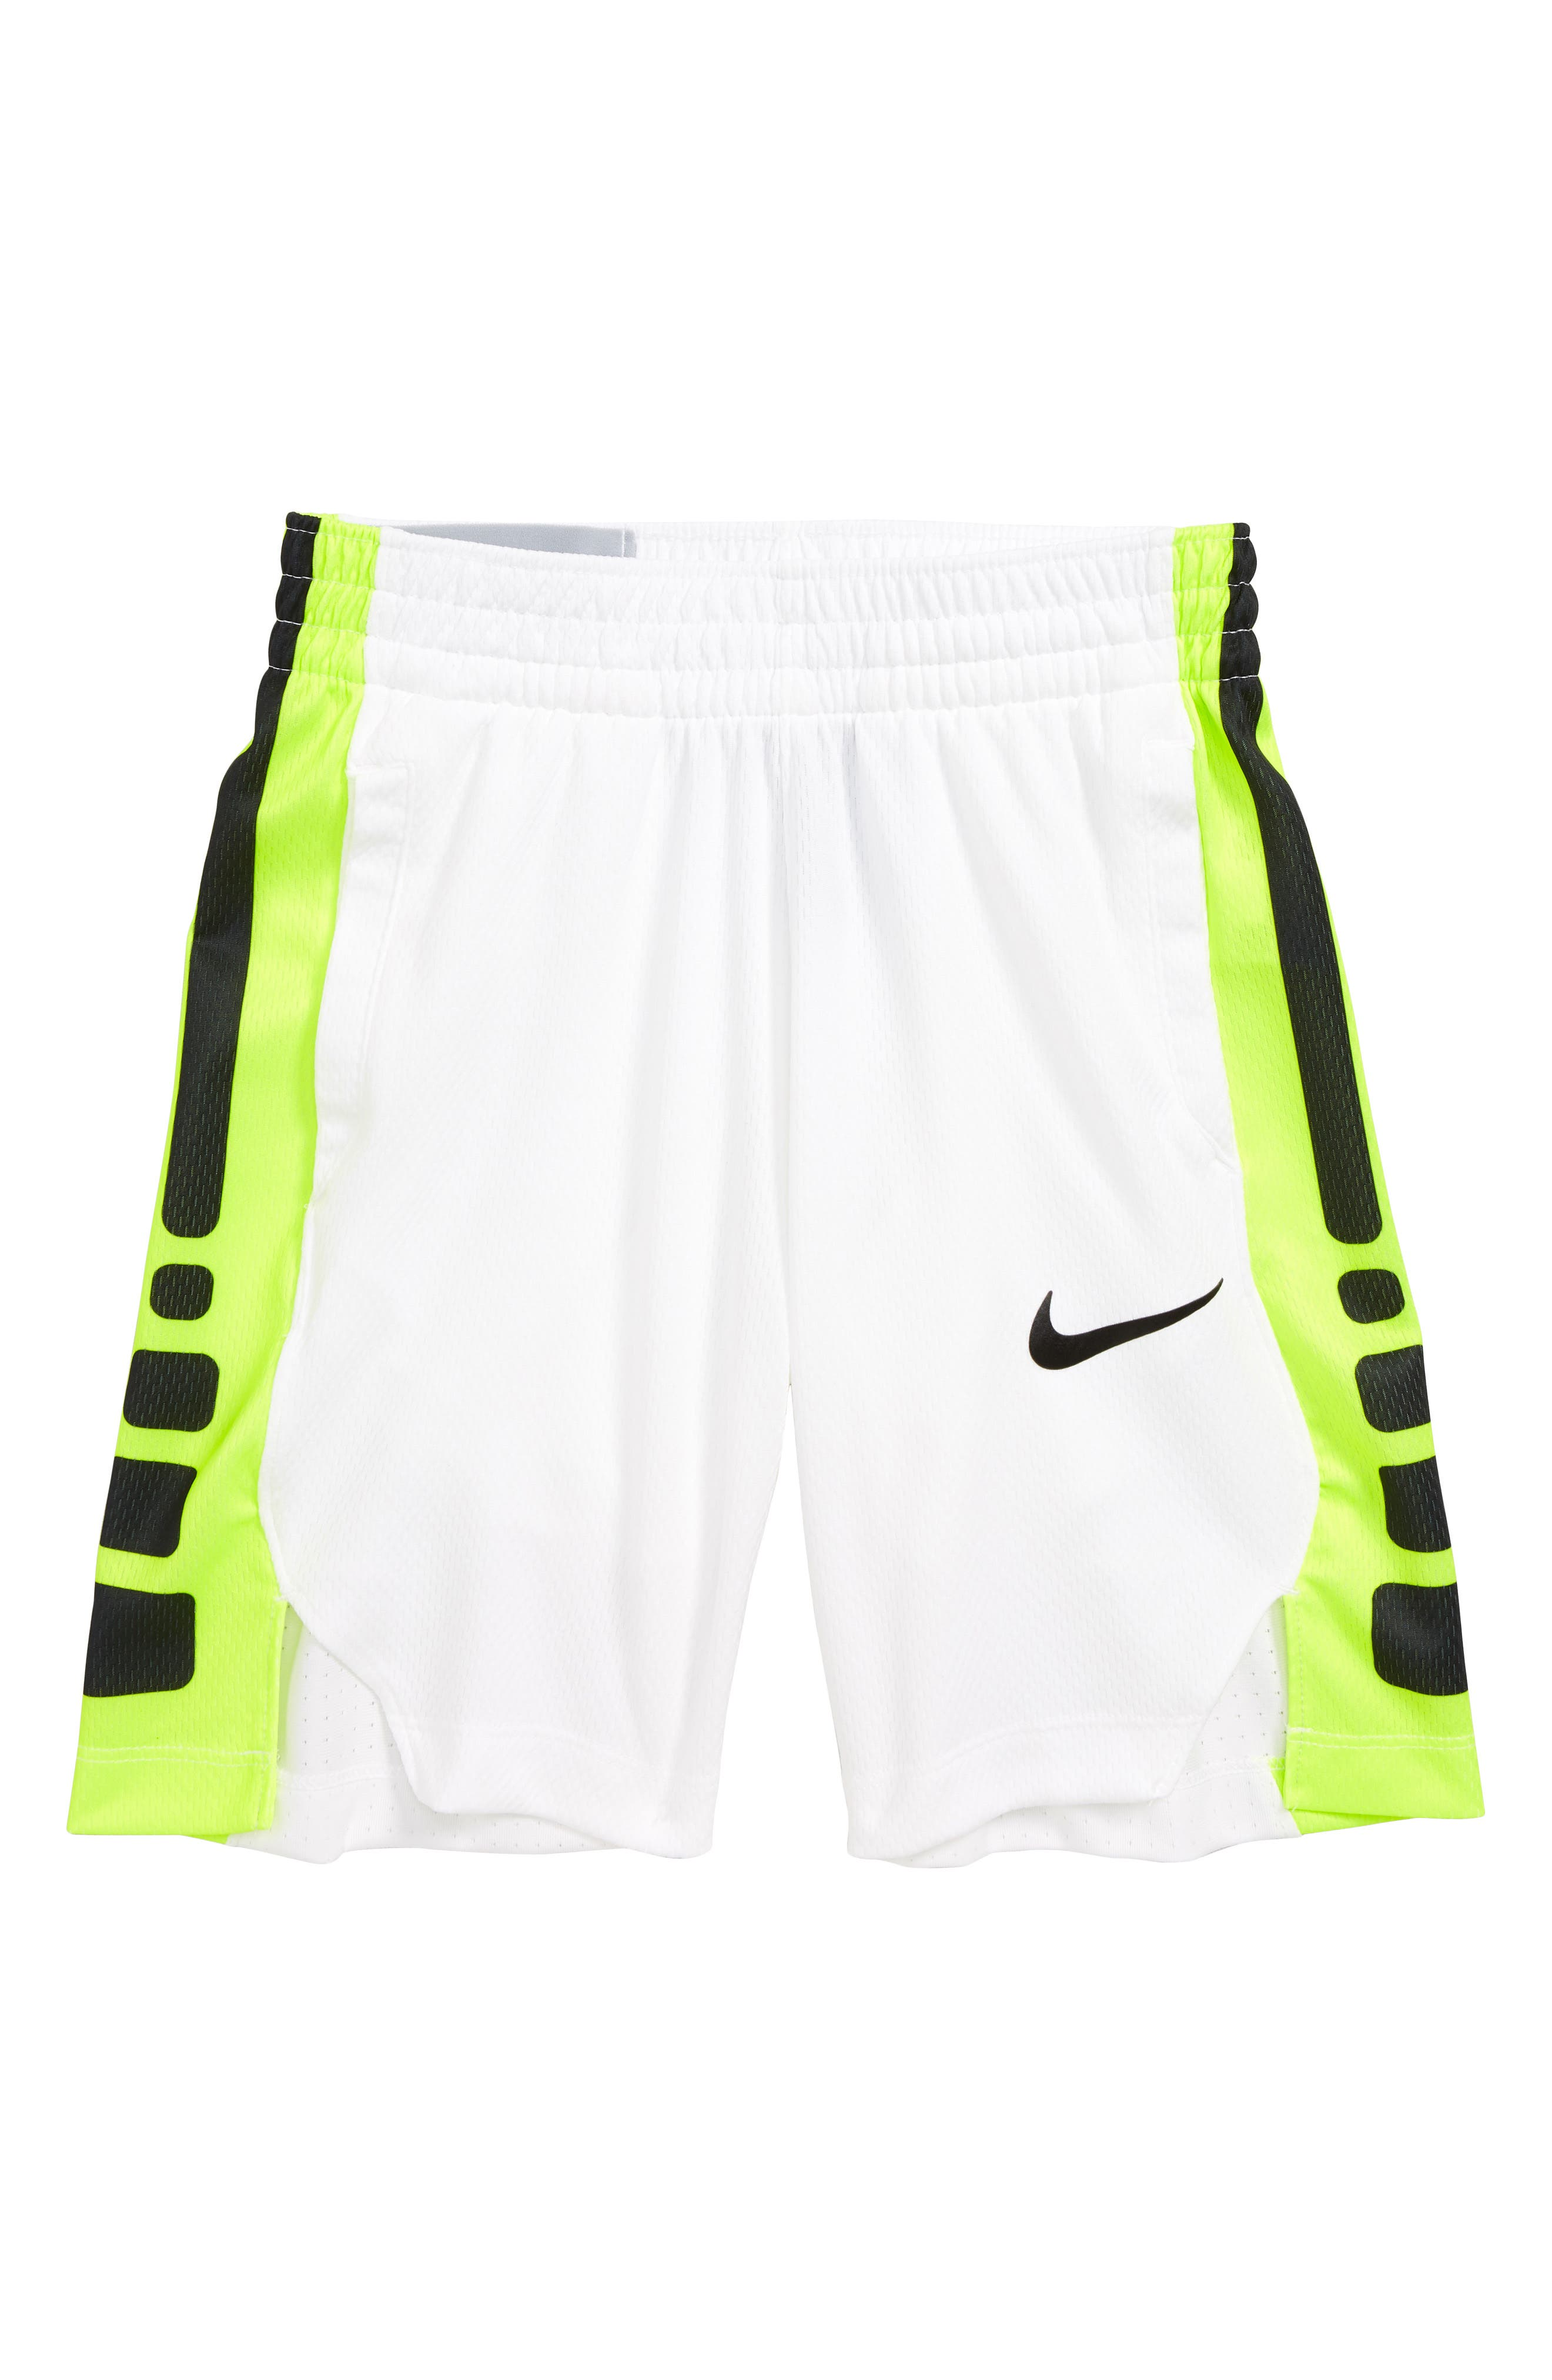 Dry Elite Basketball Shorts,                             Main thumbnail 9, color,